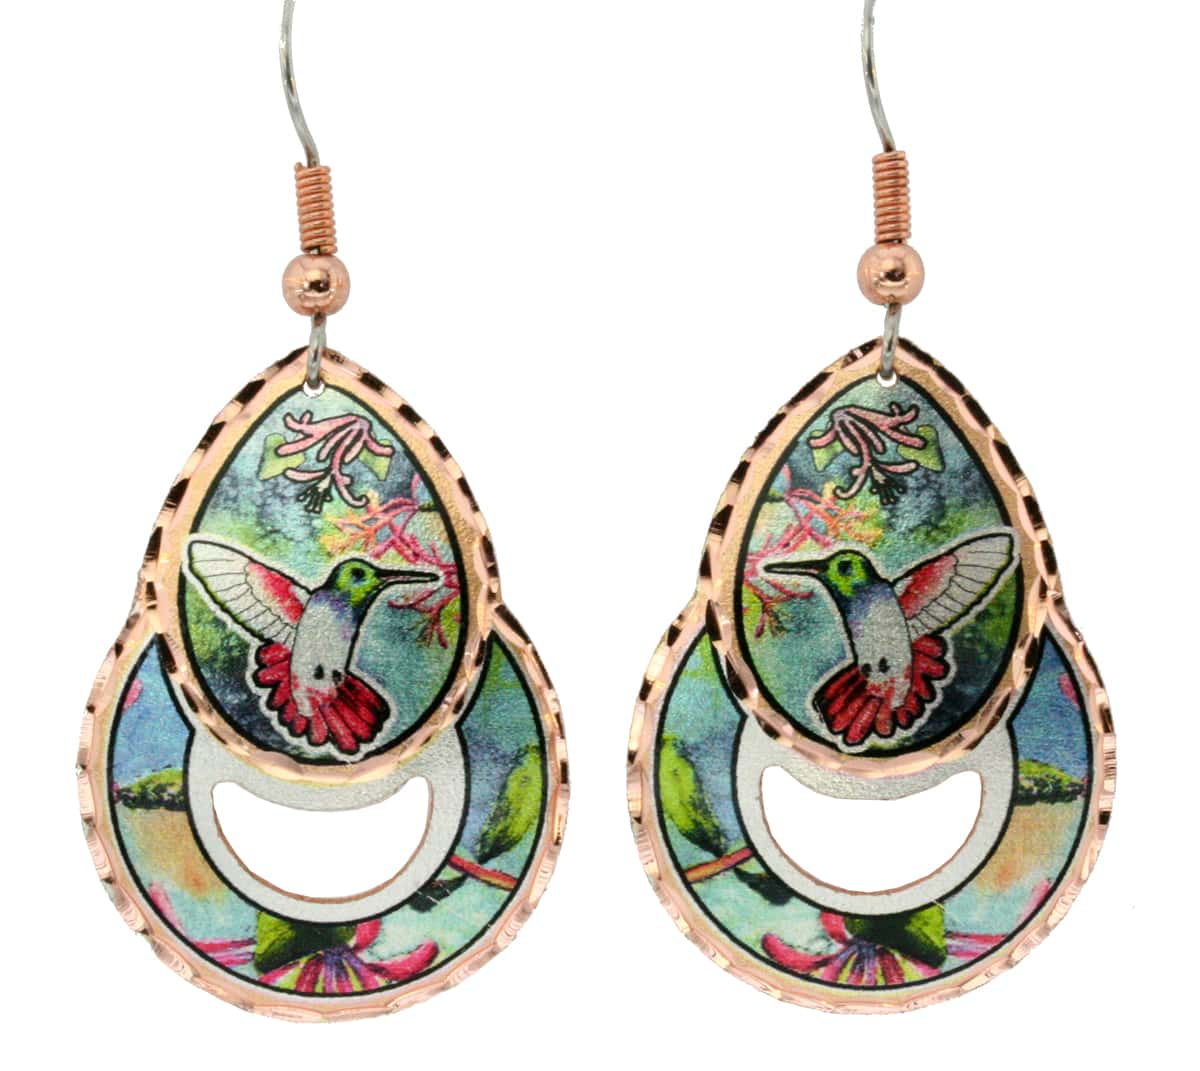 Distinctively shaped hummingbird earrings handcrafted in vibrant colors